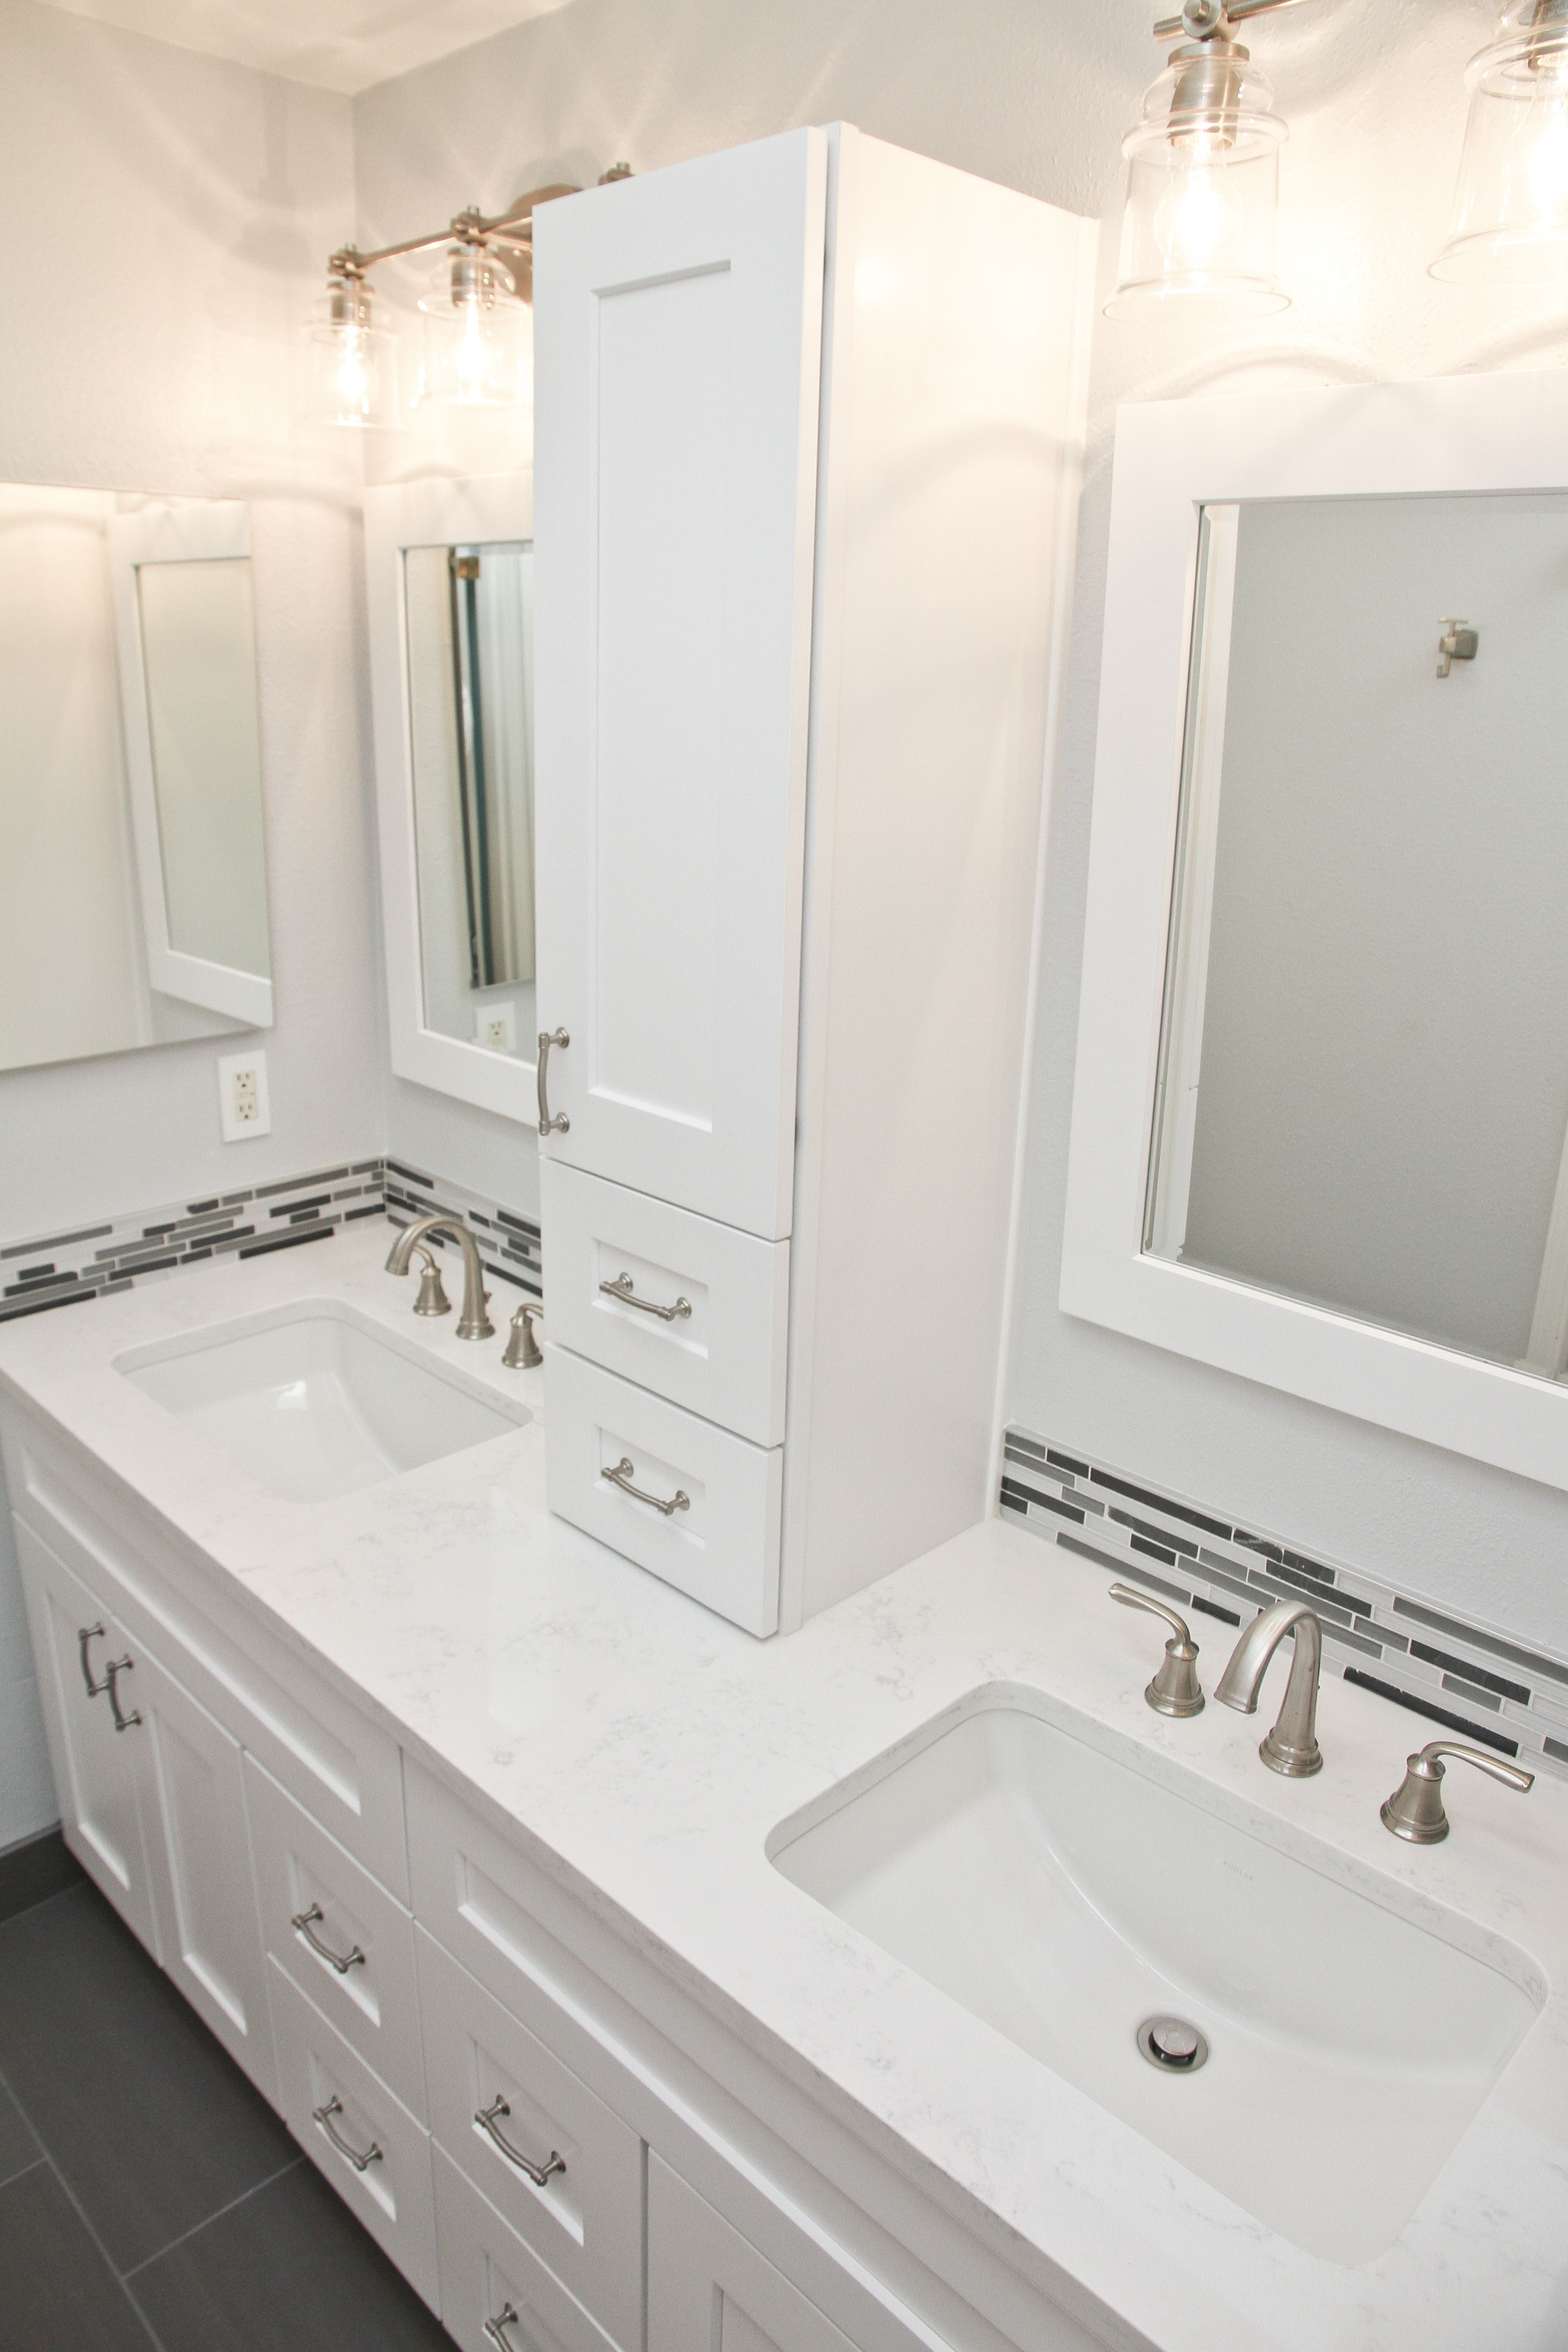 New Bathroom Remodel to create a clean look, more storage, and ...